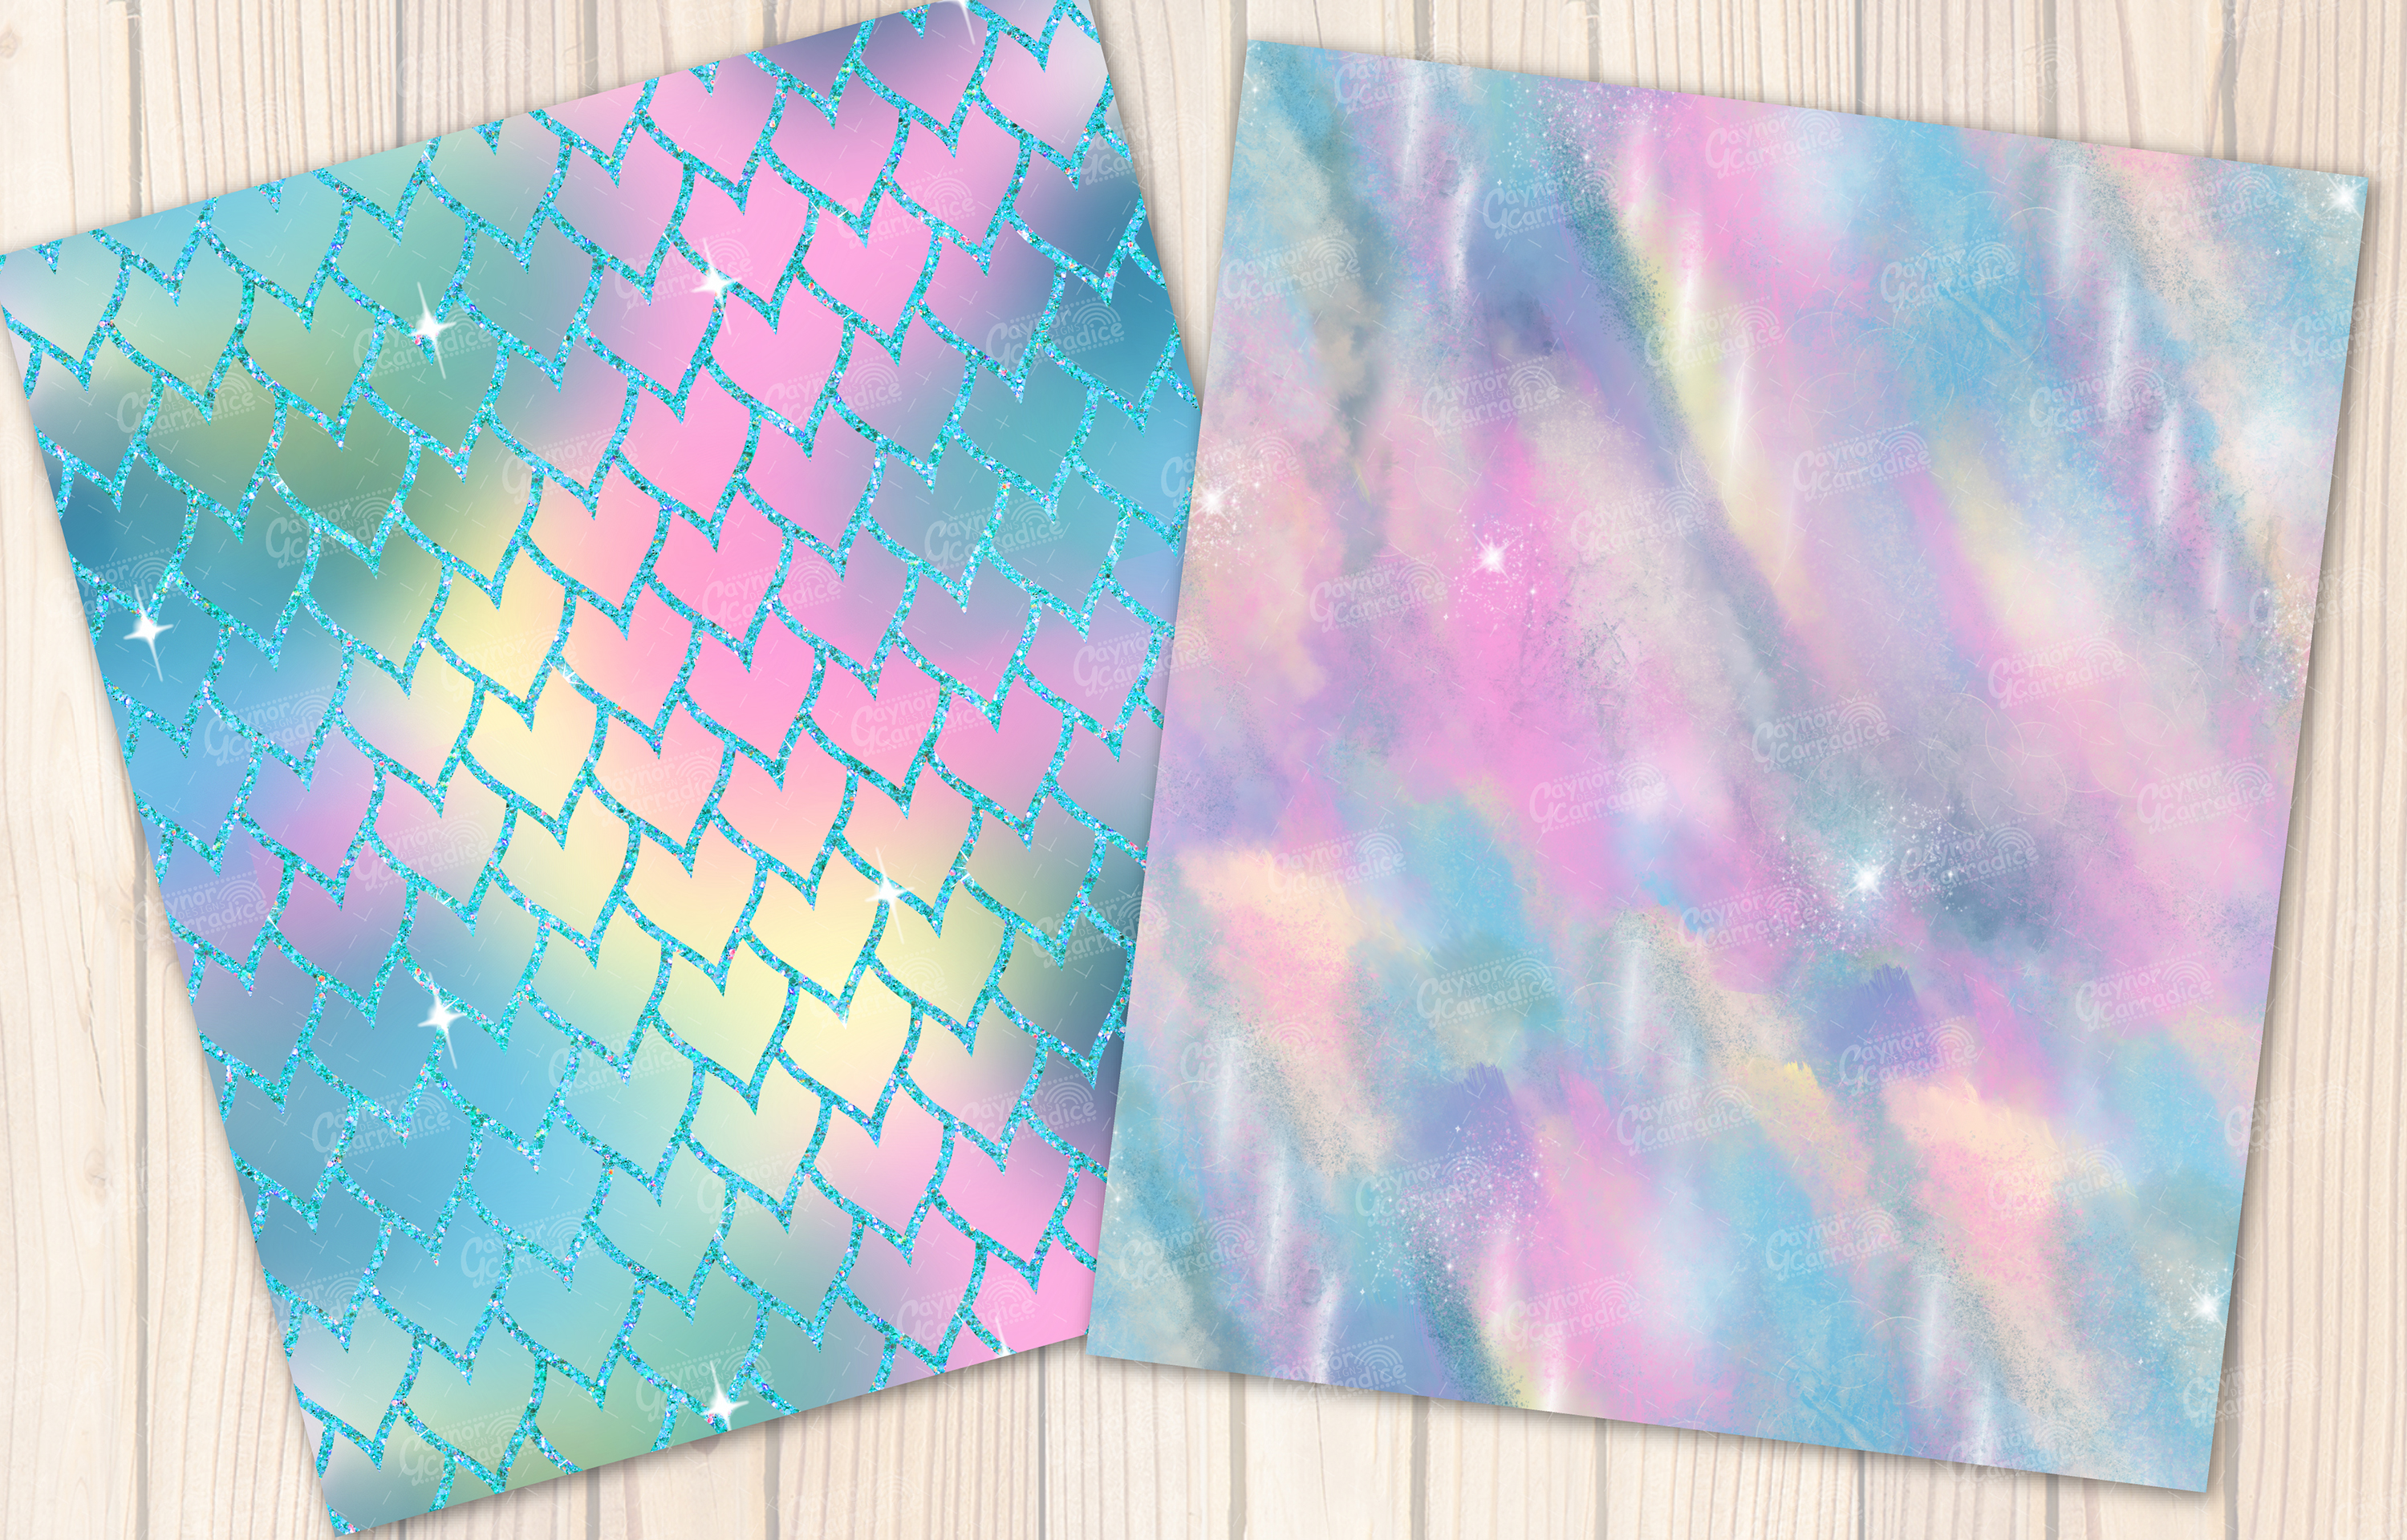 I washed up like this - Summer mermaid Seamless Patterns example image 2